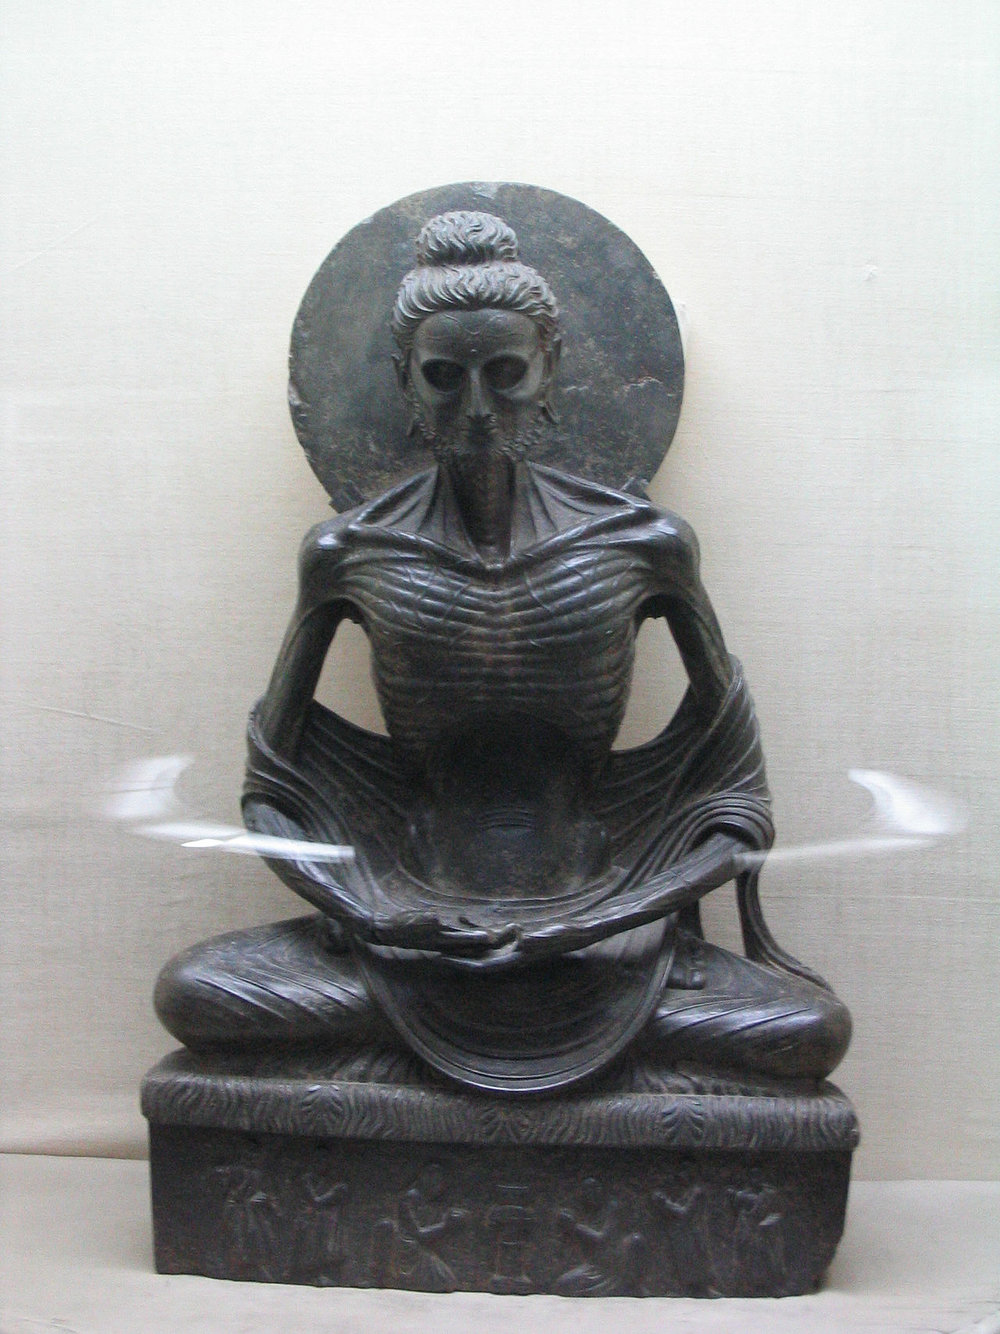 Fasting_buddha_at_lahore_museum.jpg